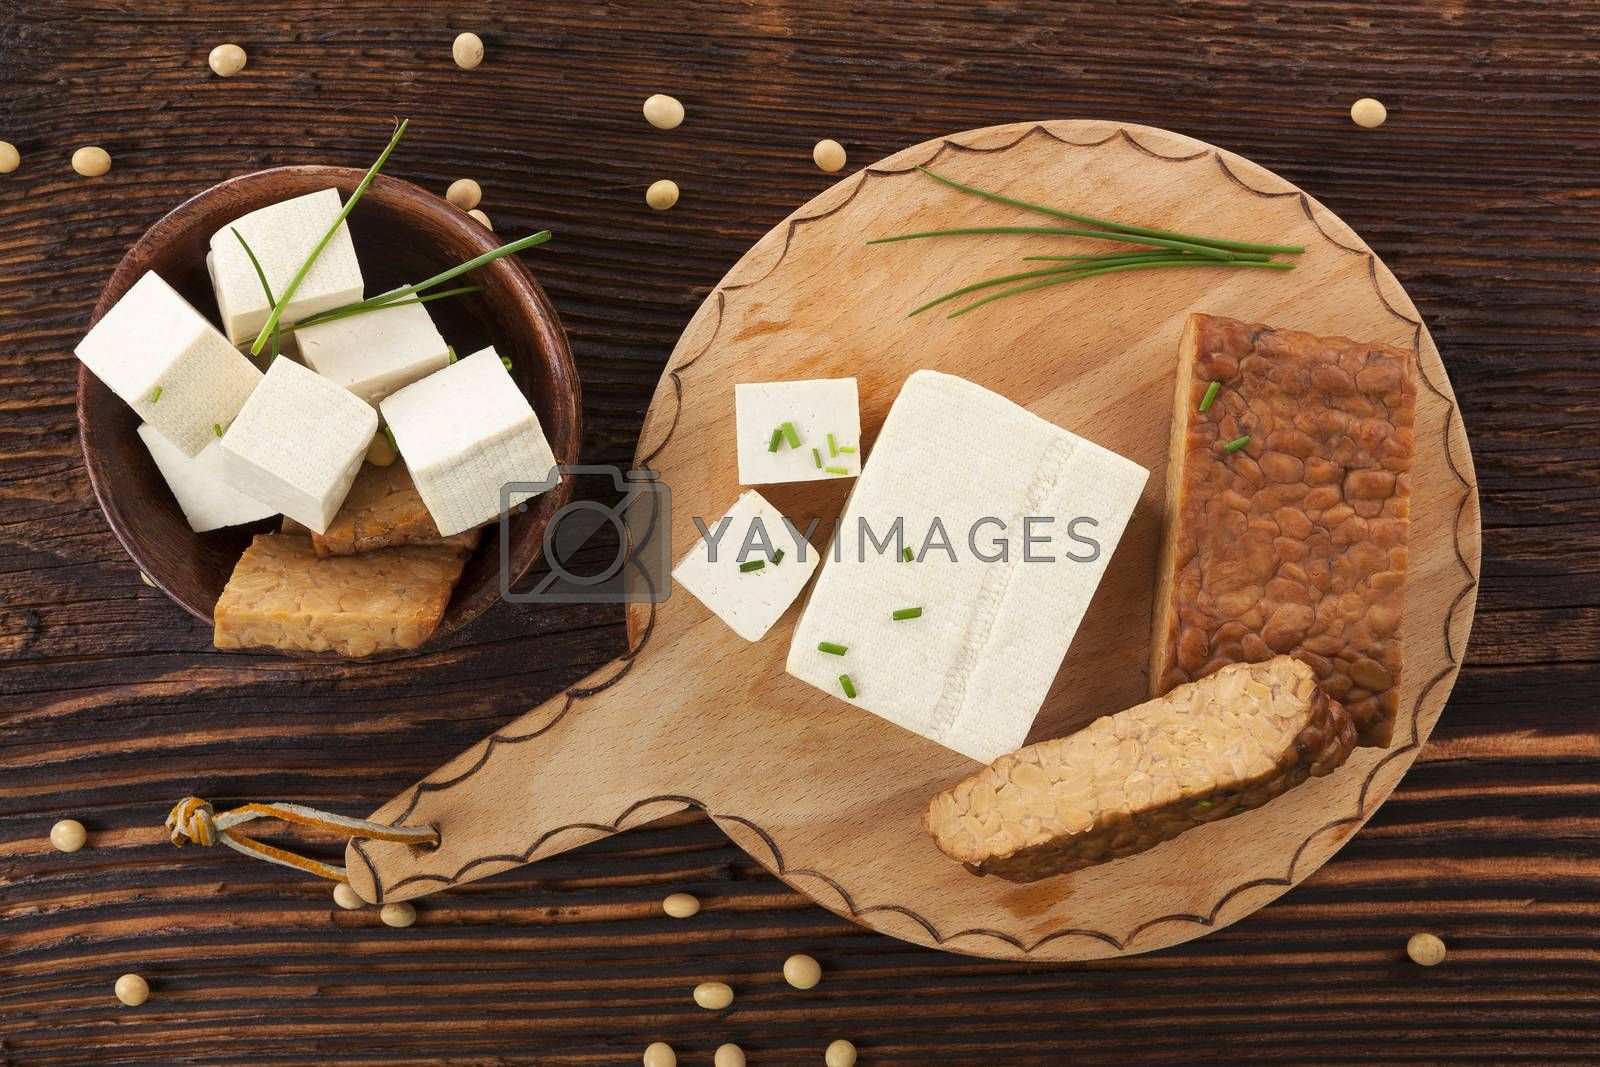 Tofu and tempeh background. by eskymaks